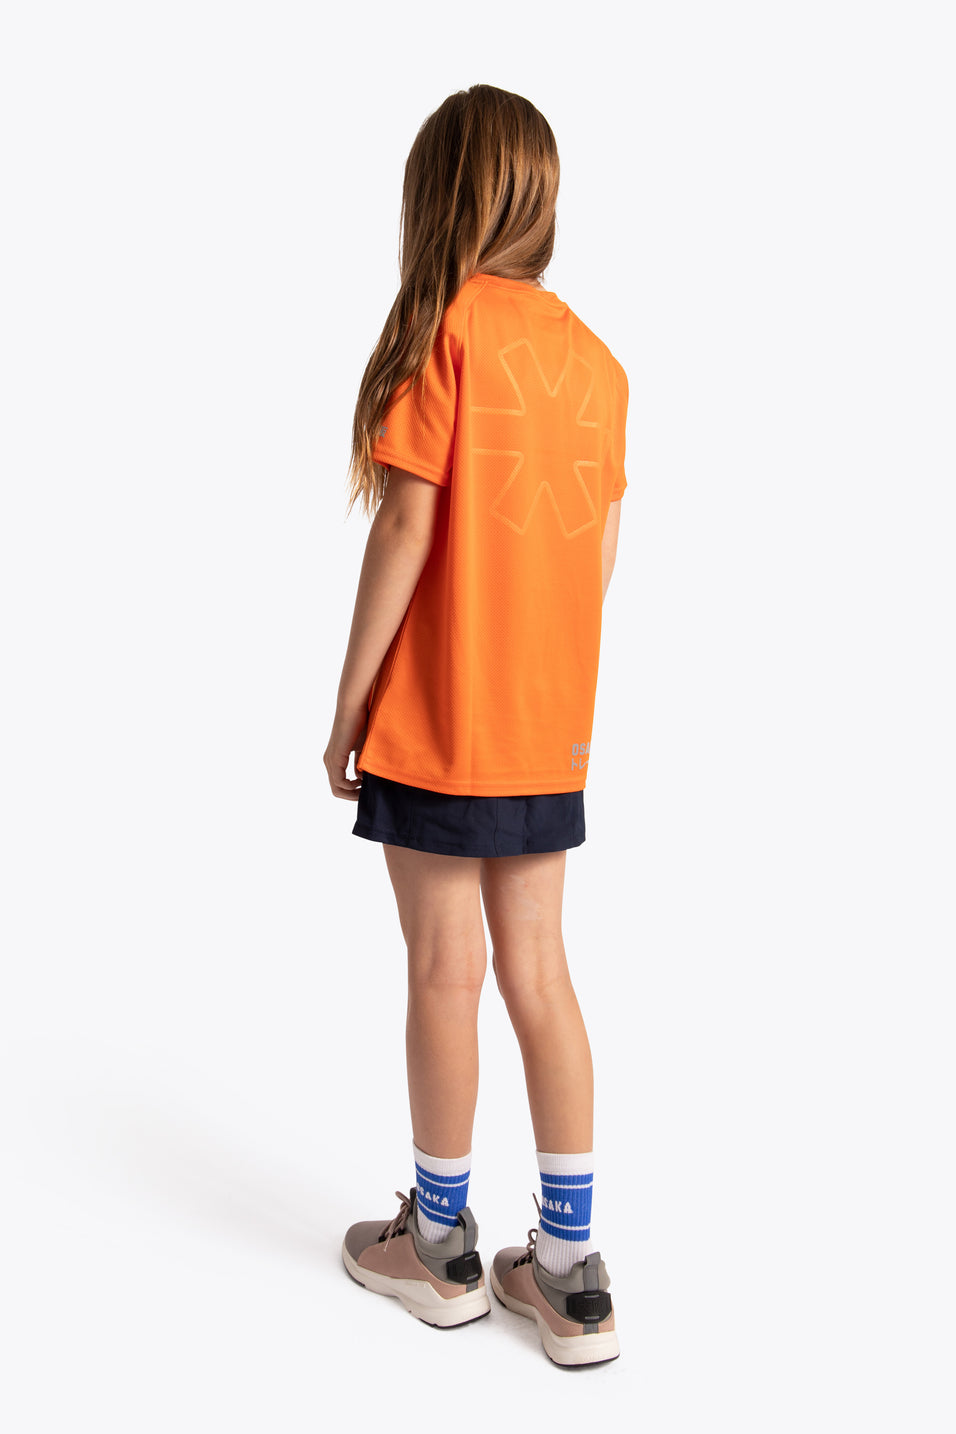 Osaka Kids Training Tee - Orange